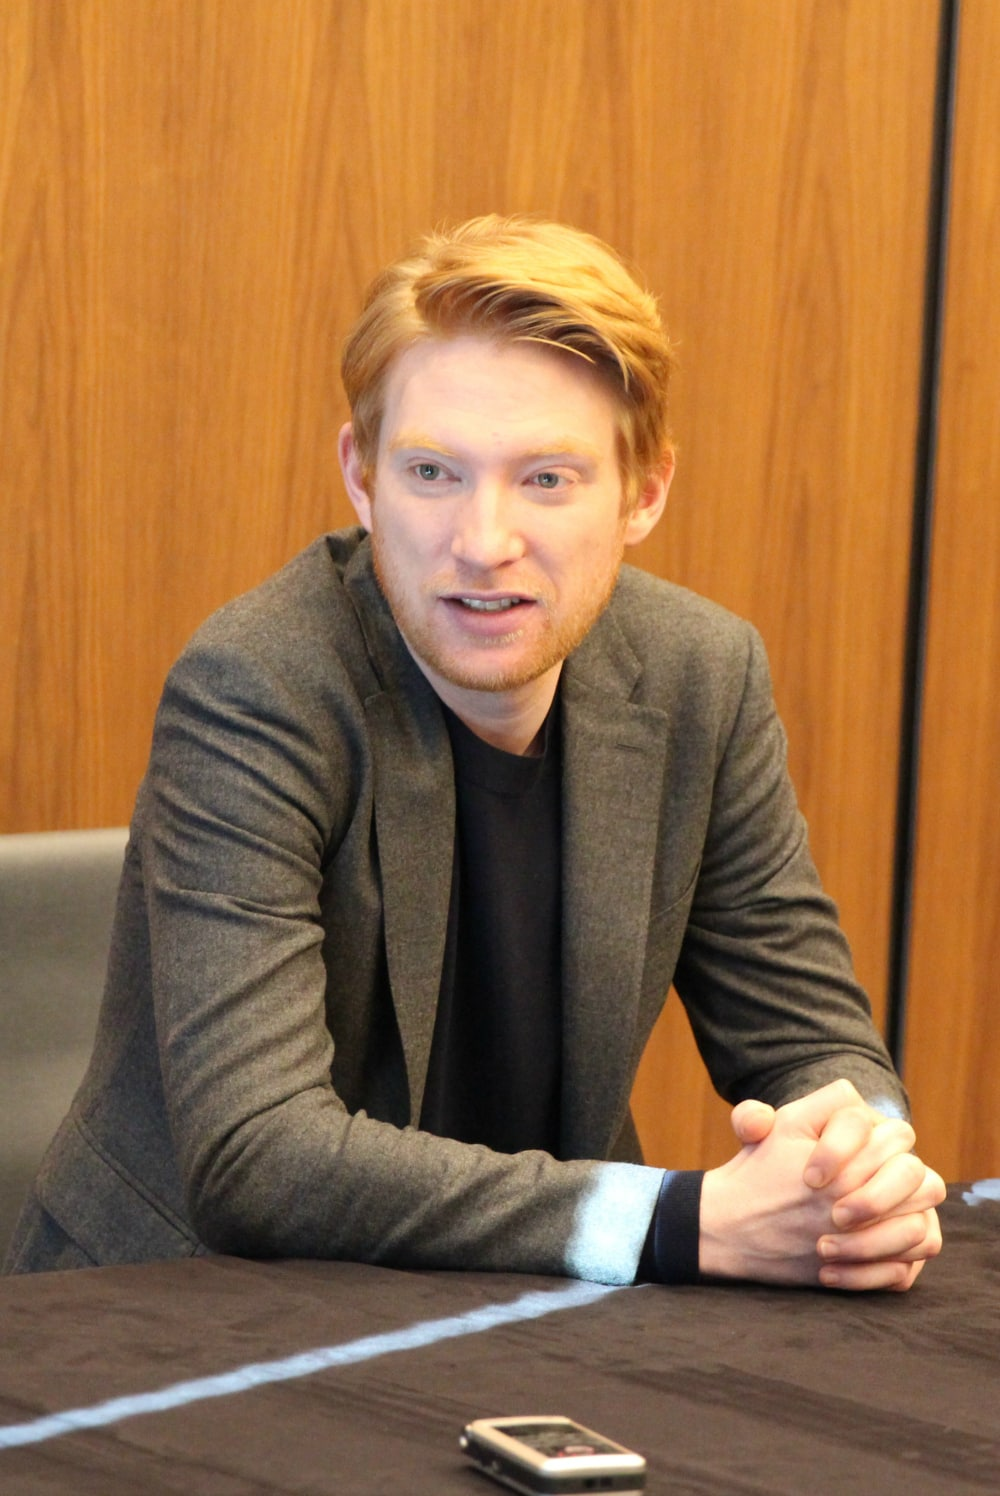 Domhnall Gleeson as General Hux in Star Wars: The Last Jedi